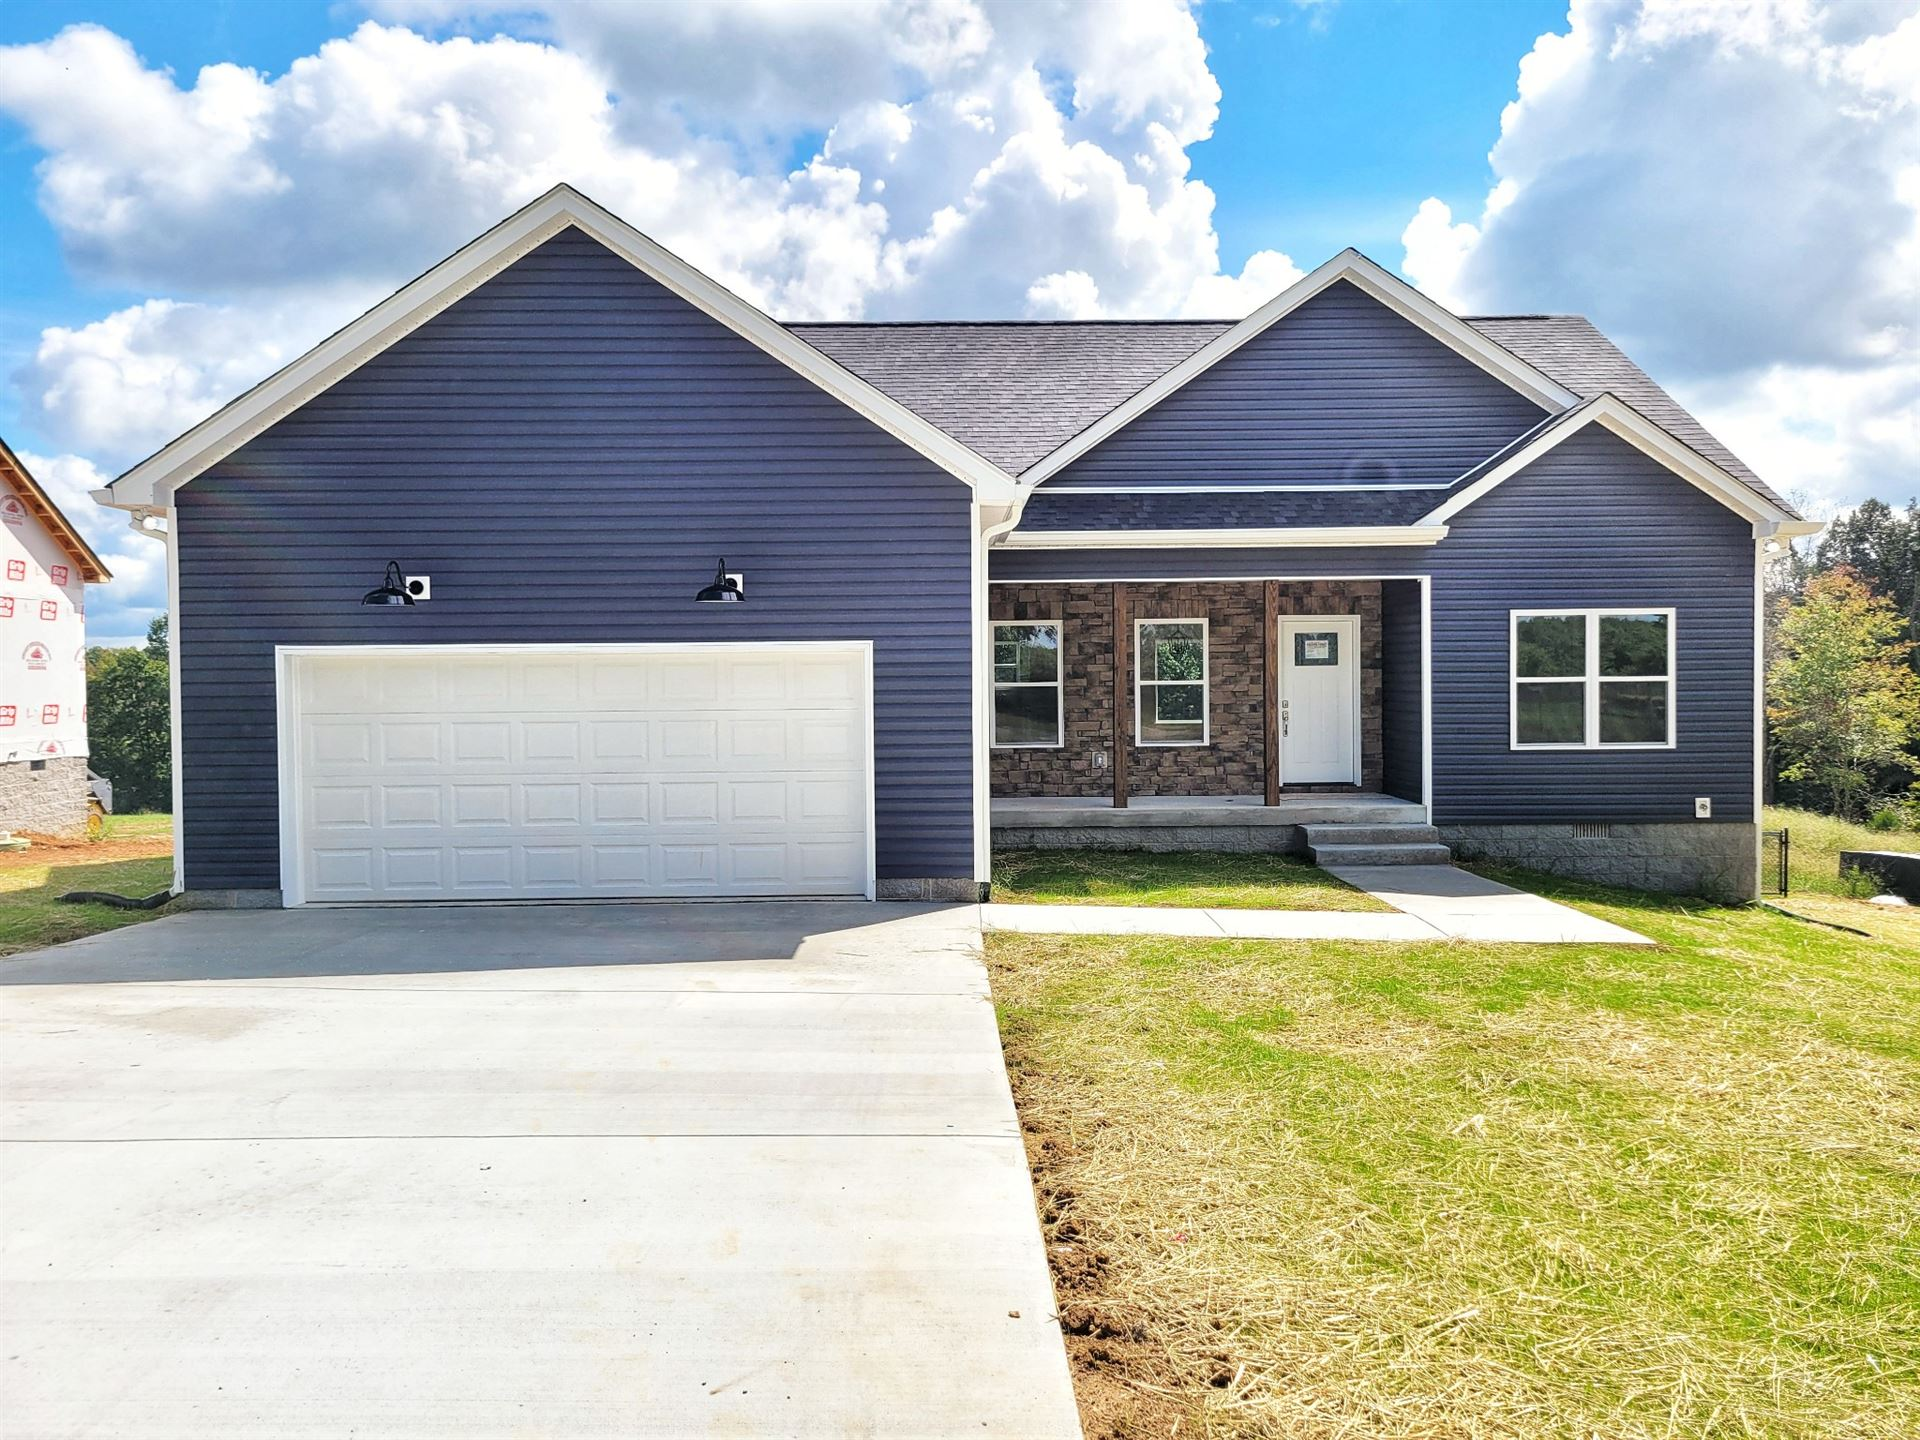 Photo of 1330 Taylor Town Rd, White Bluff, TN 37187 (MLS # 2243387)